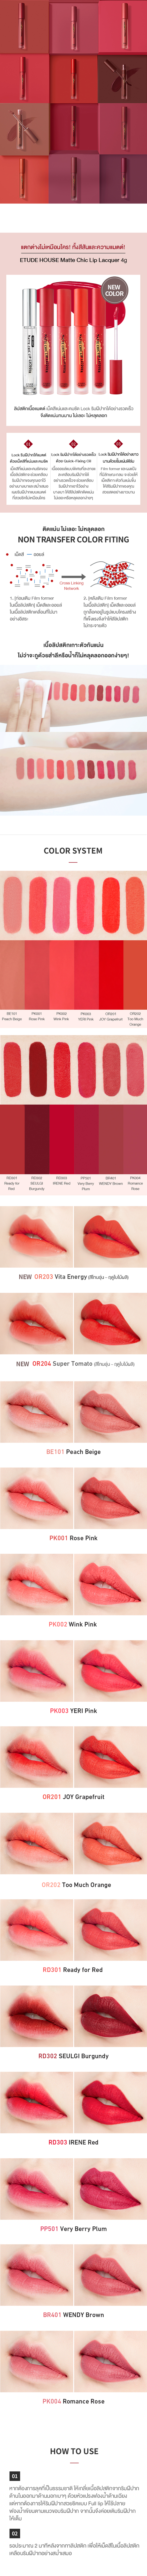 TH1_Matte-Chic-Lip-Lacquer-(2-New-Colors)_w